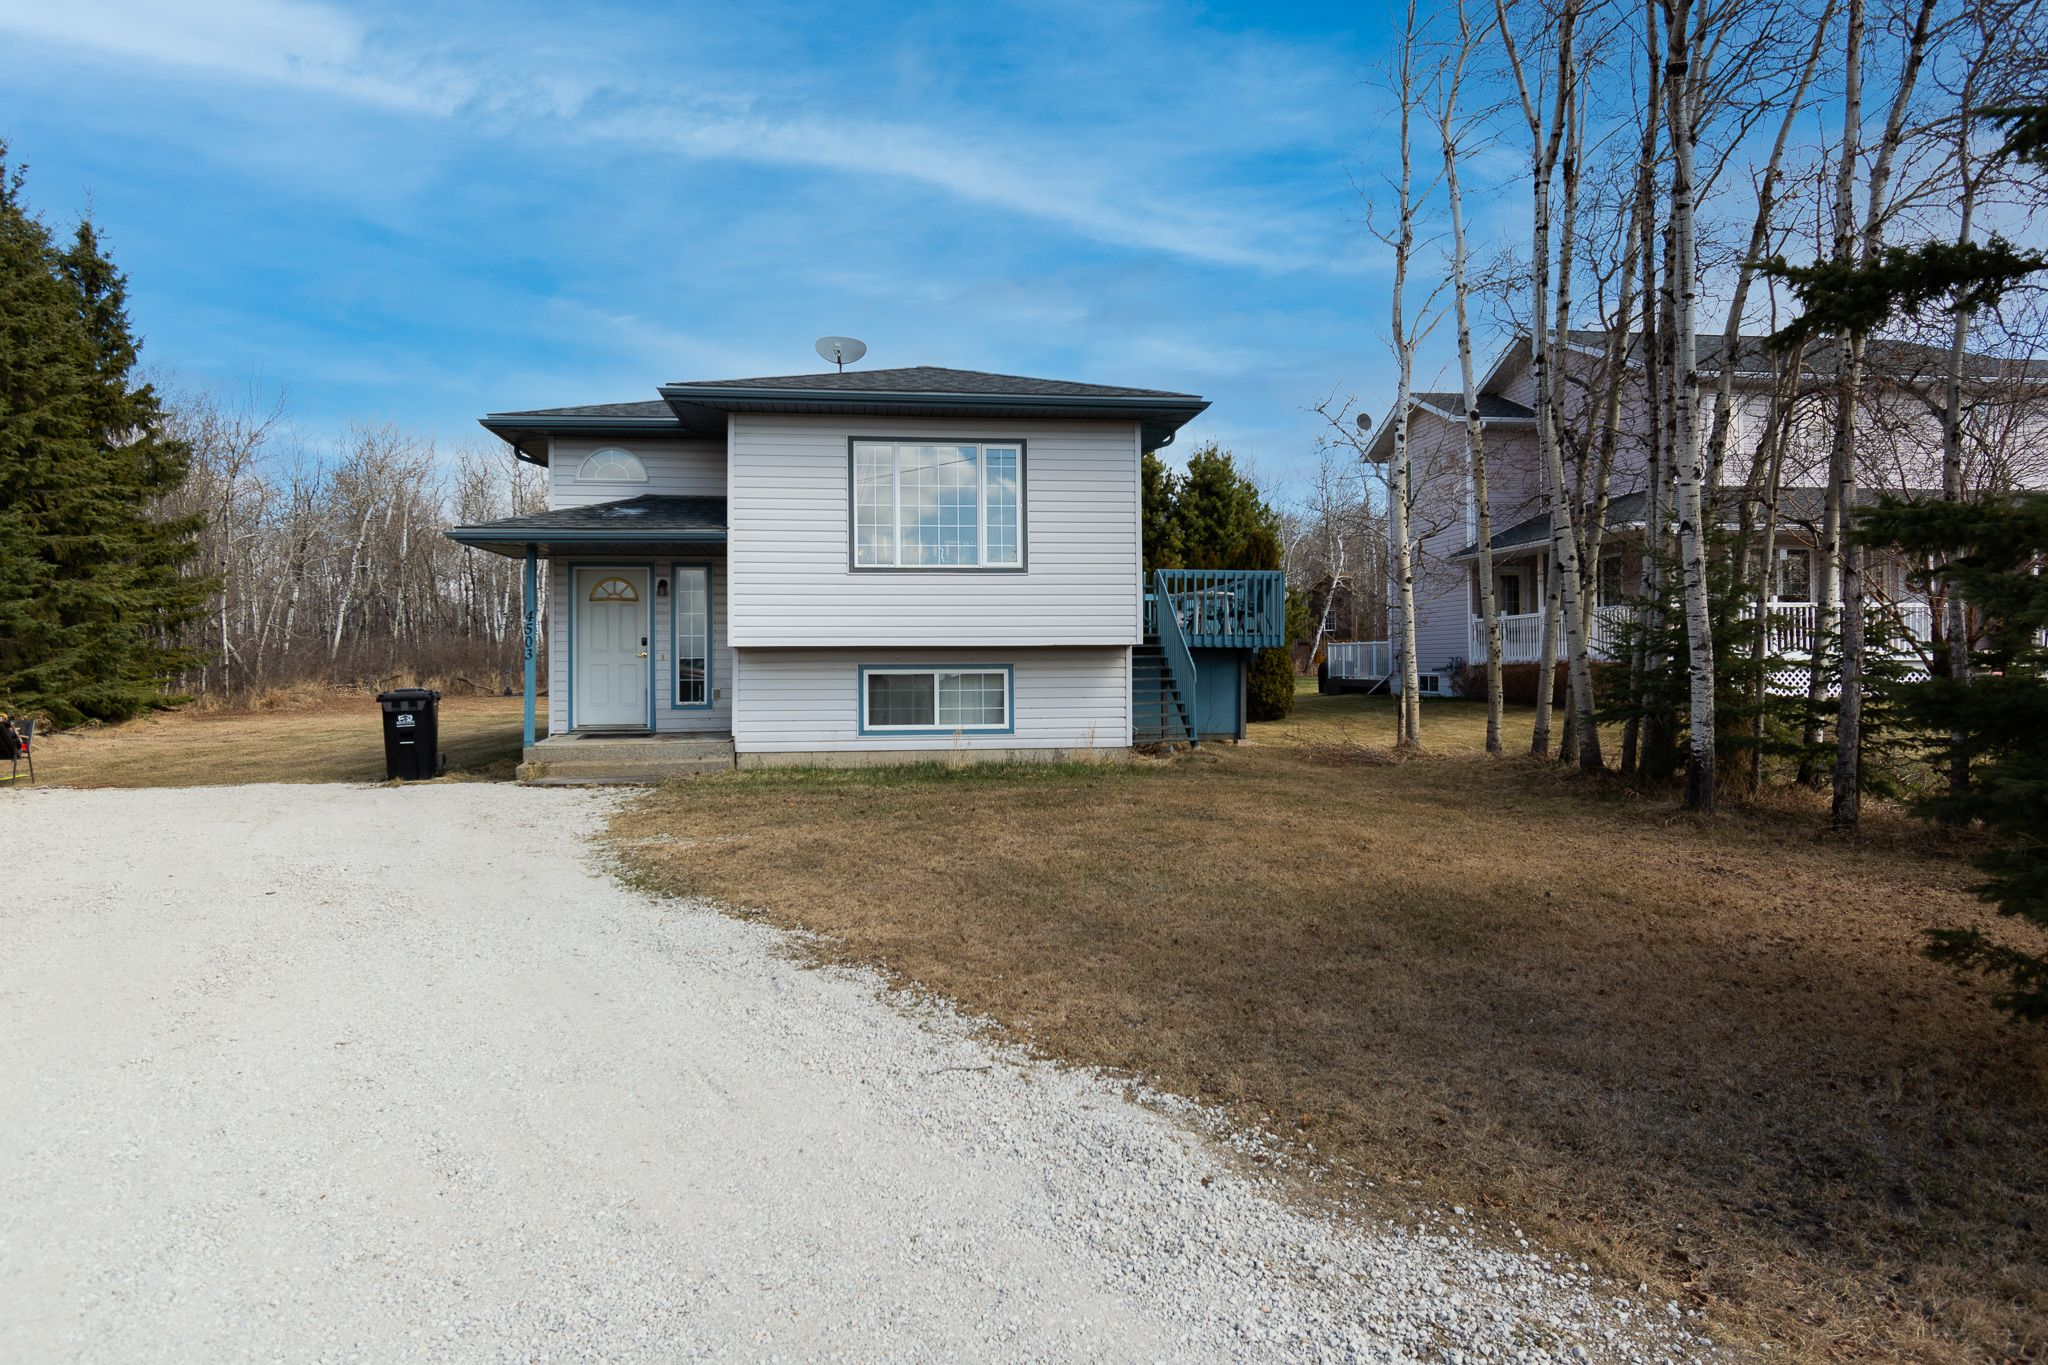 Main Photo: 4503 48 Avenue E: Ardmore House for sale : MLS®# E4240214